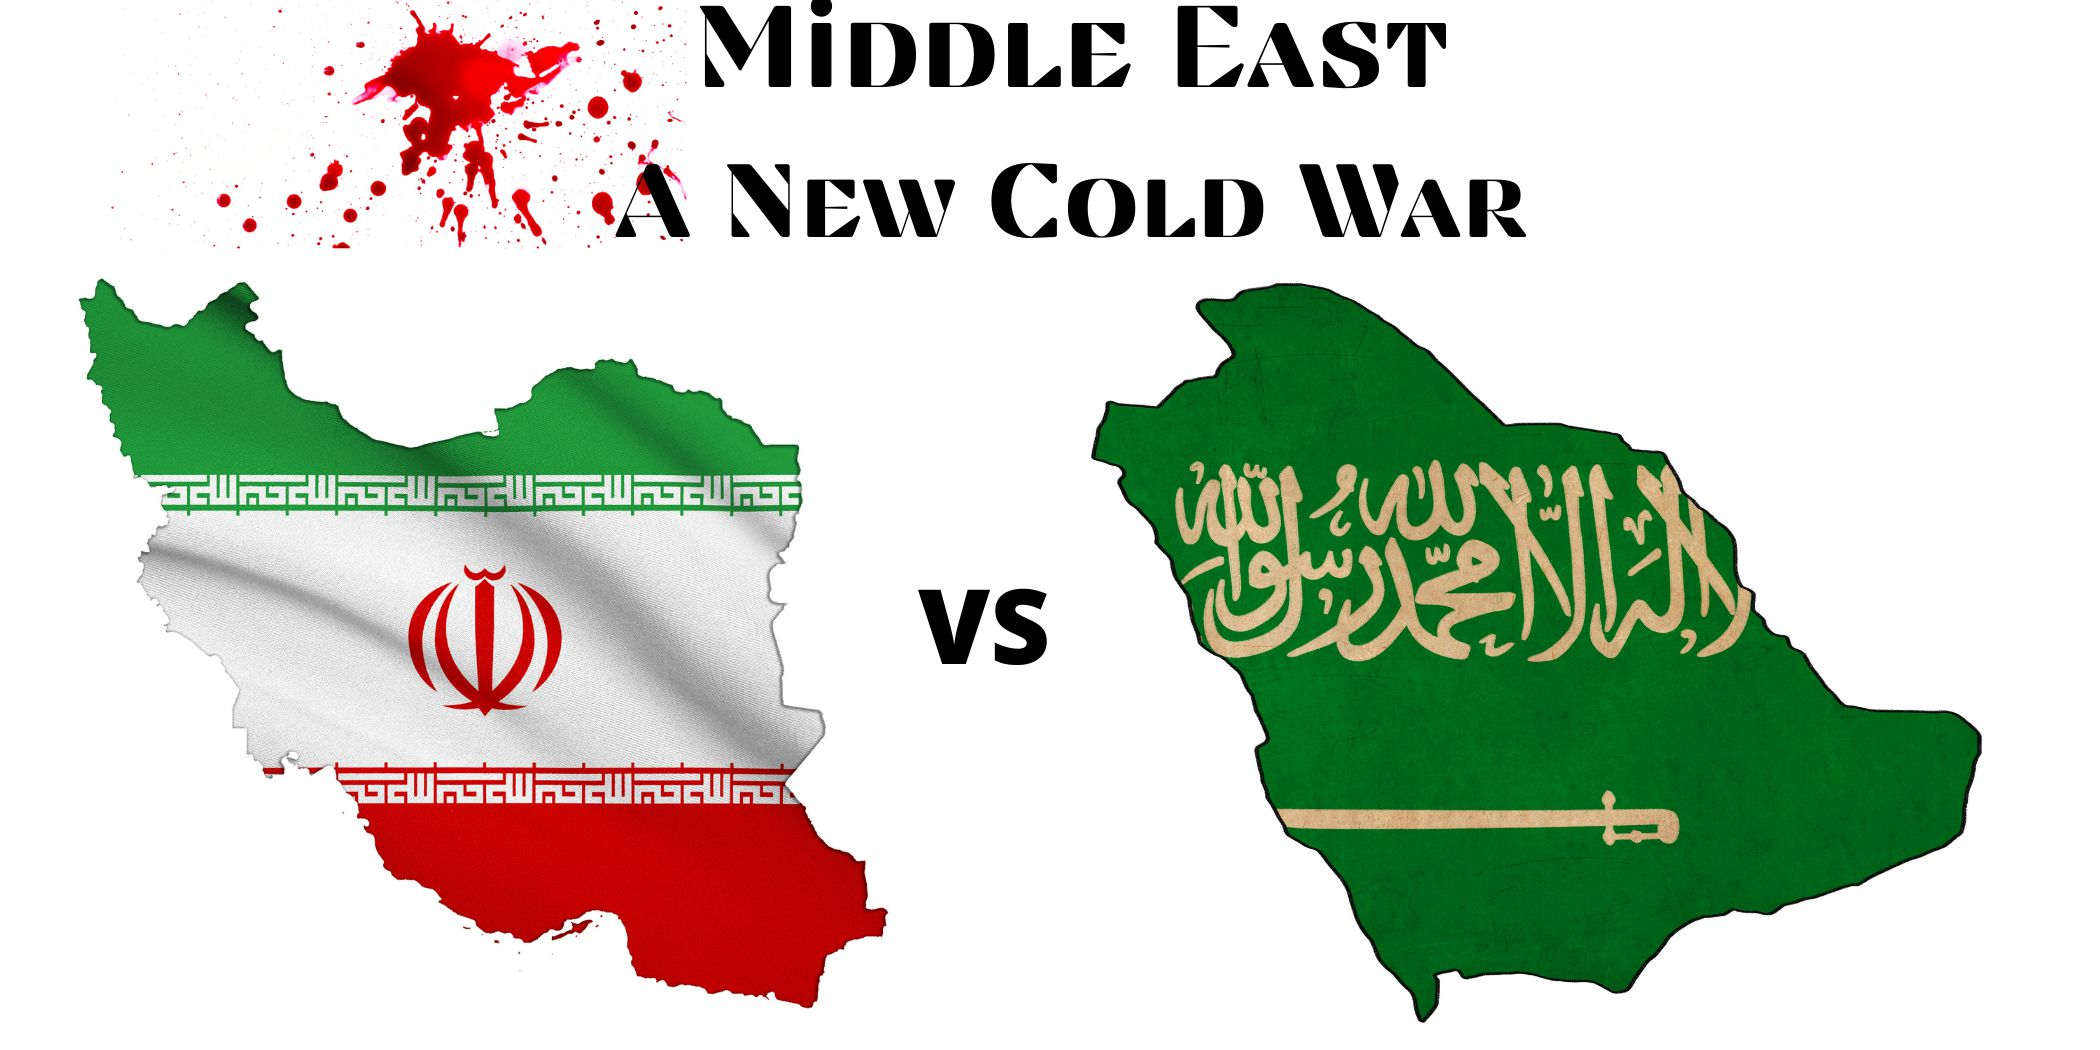 Middle East A New Cold War